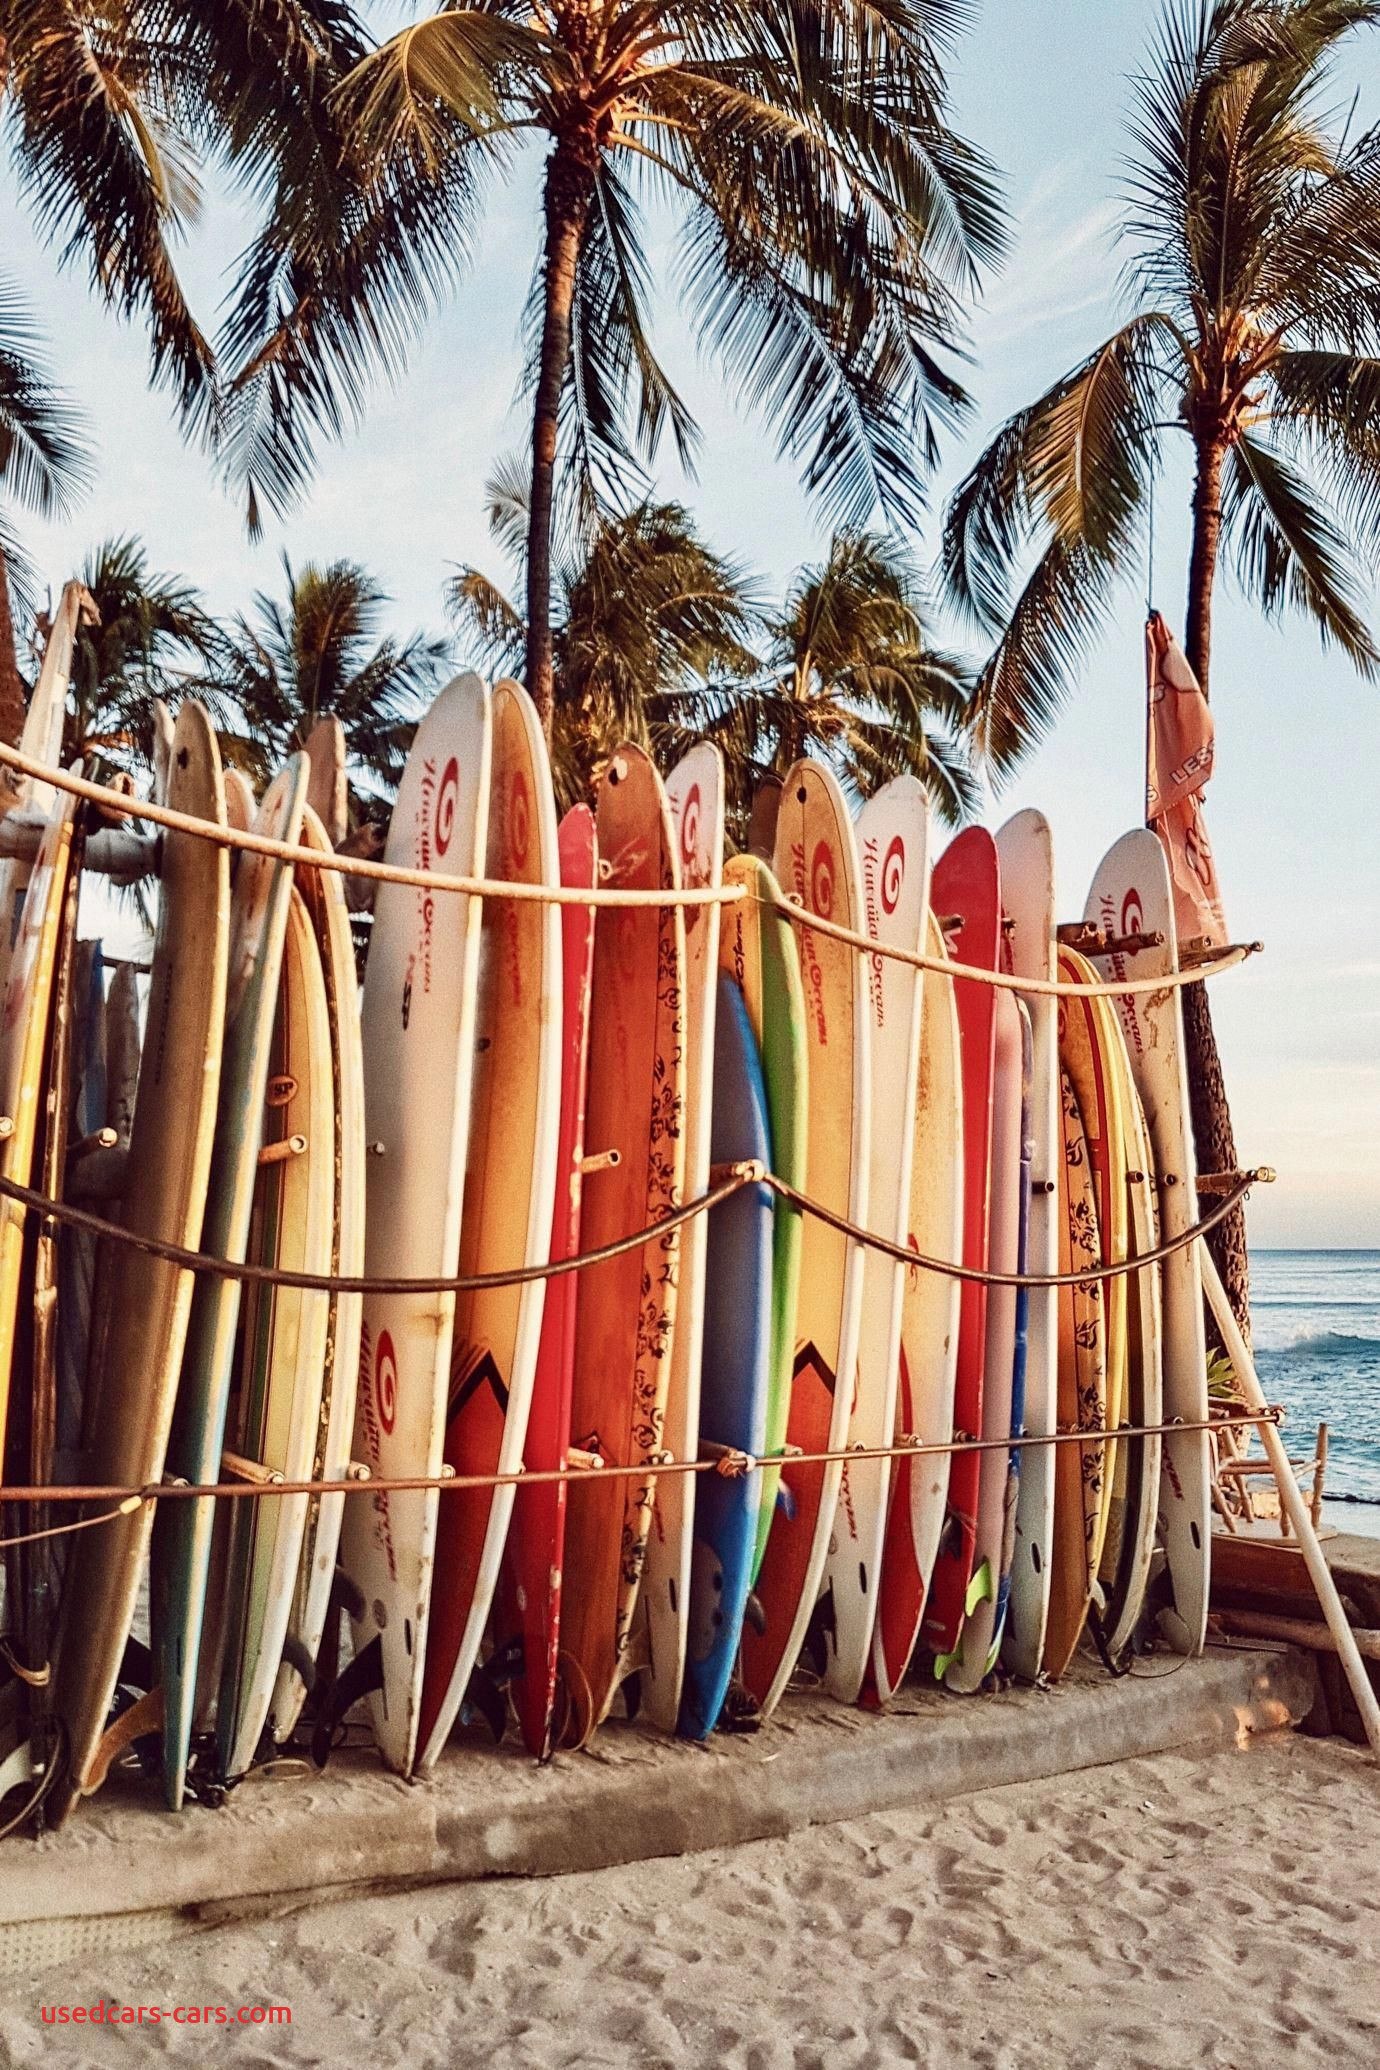 Used Cars for Sale Oahu Beautiful the Ultimate Oahu Hawaii Travelguide Best Hotels Beaches In